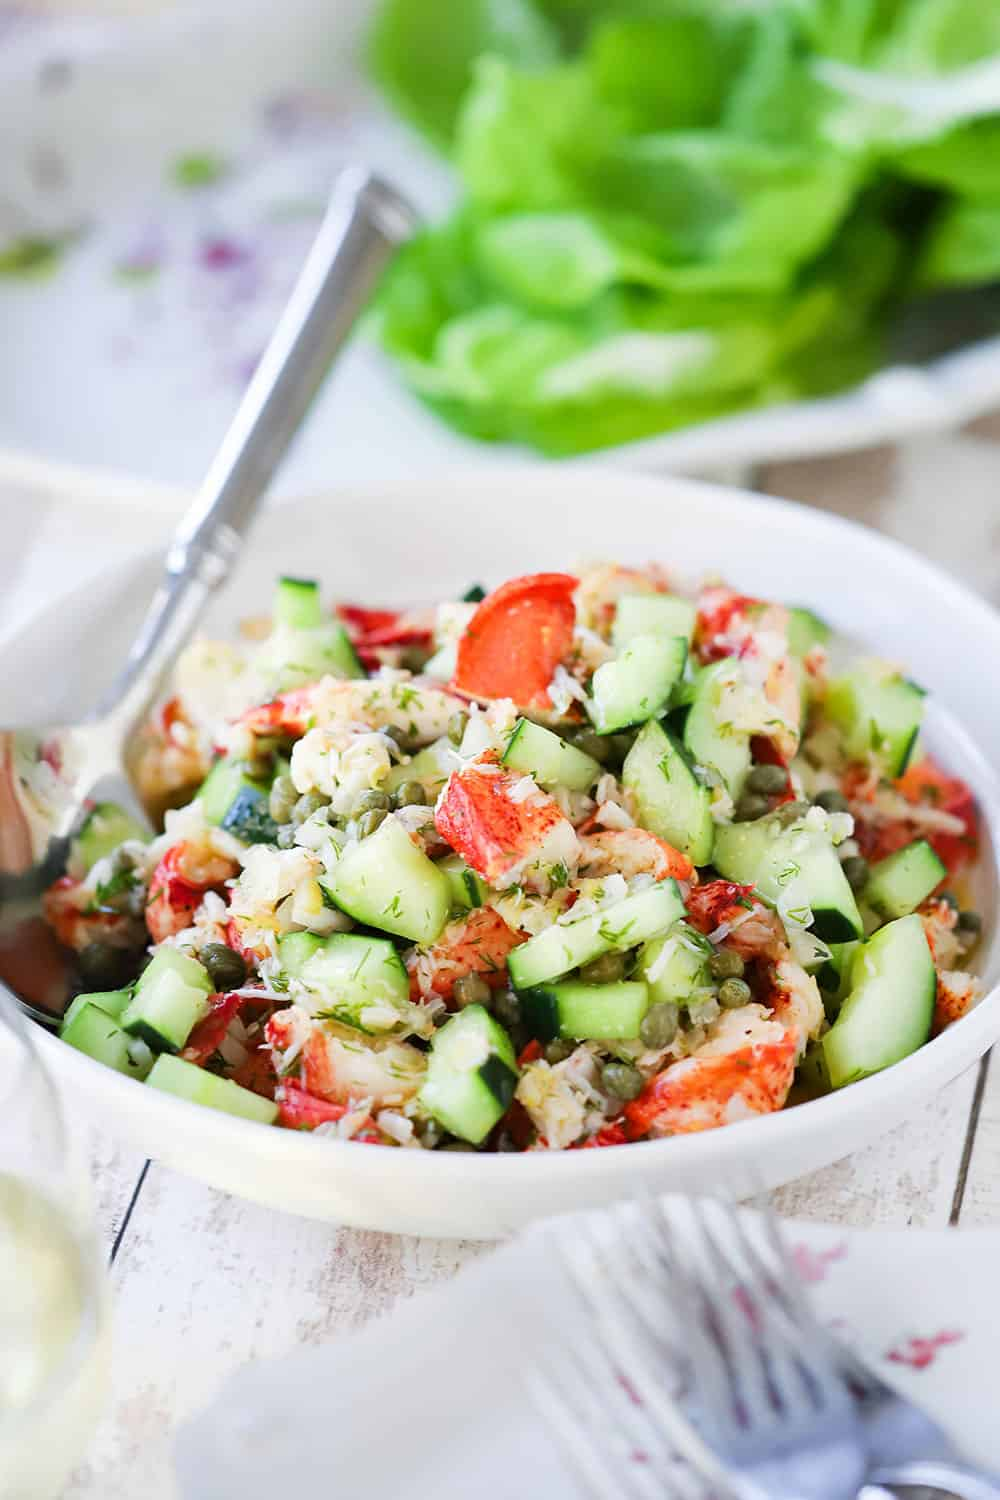 A white serving bowl filled with a lobster salad with cucumber and herbs with a large silver spoon in the salad.